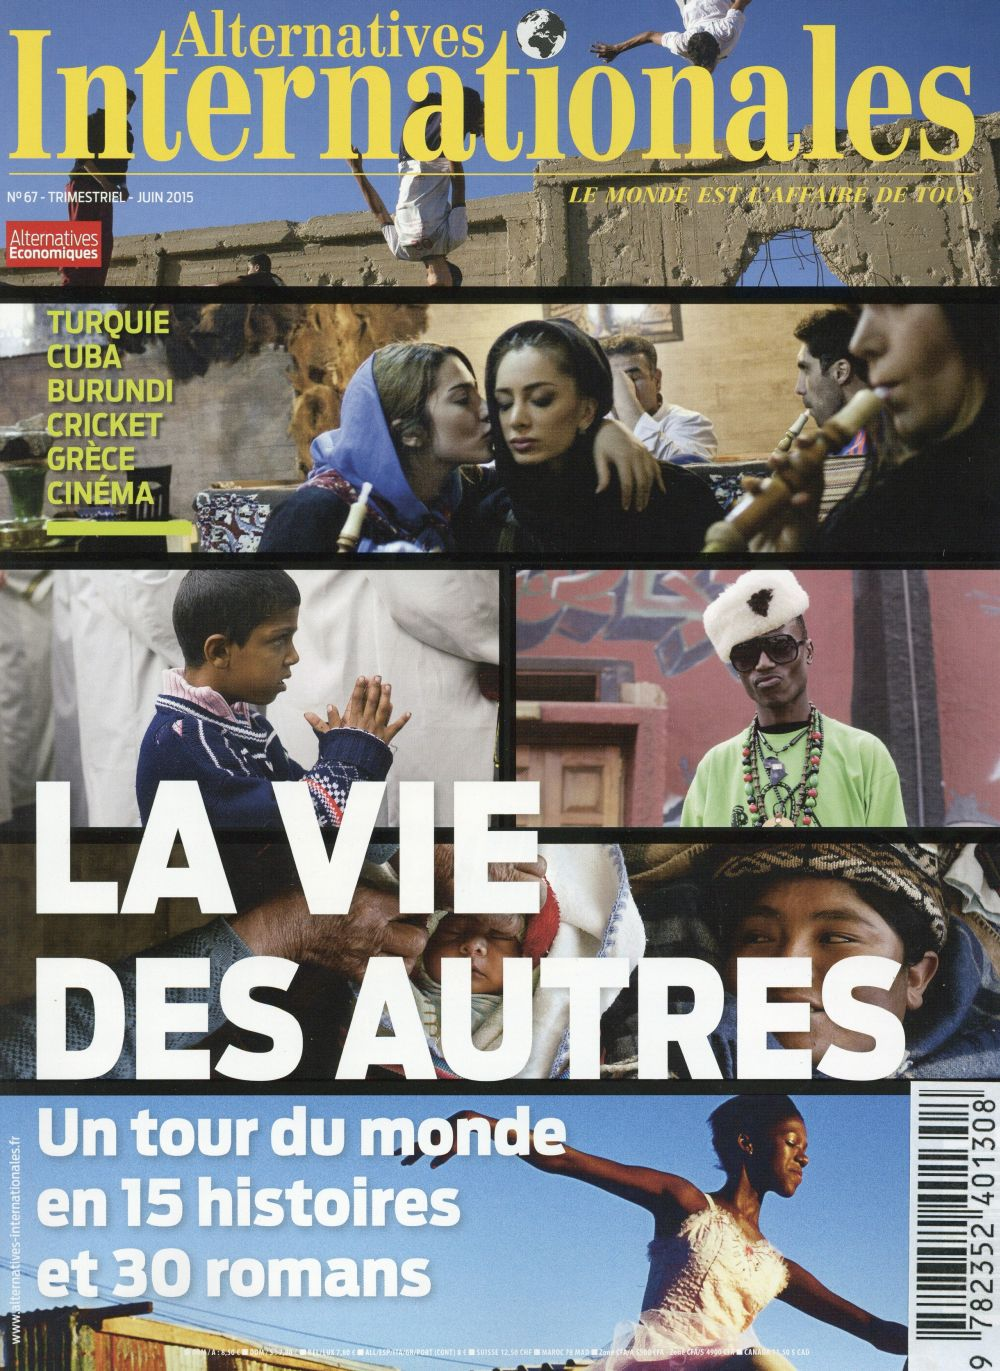 ALTERNATIVES INTERNATIONALES - NUMERO 67 - JUIN 2015